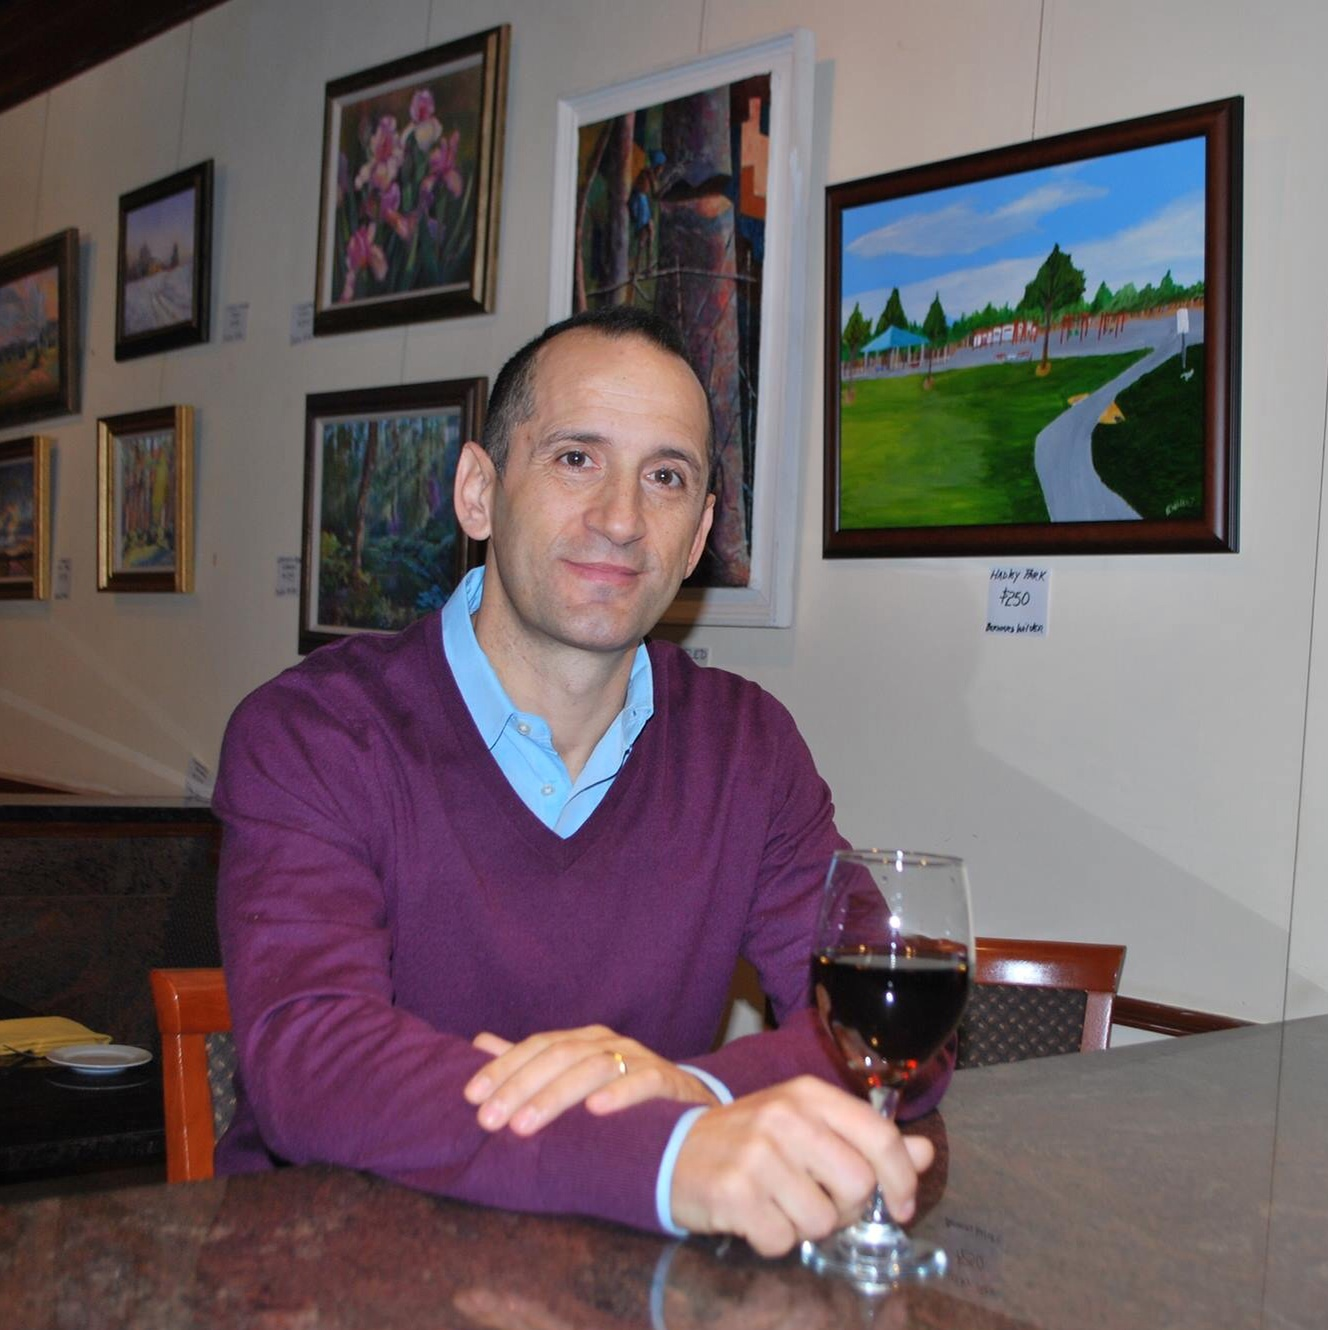 Welcome, friends. - A warm welcome from Roberto Deias, owner of Amici Miei Ristorante